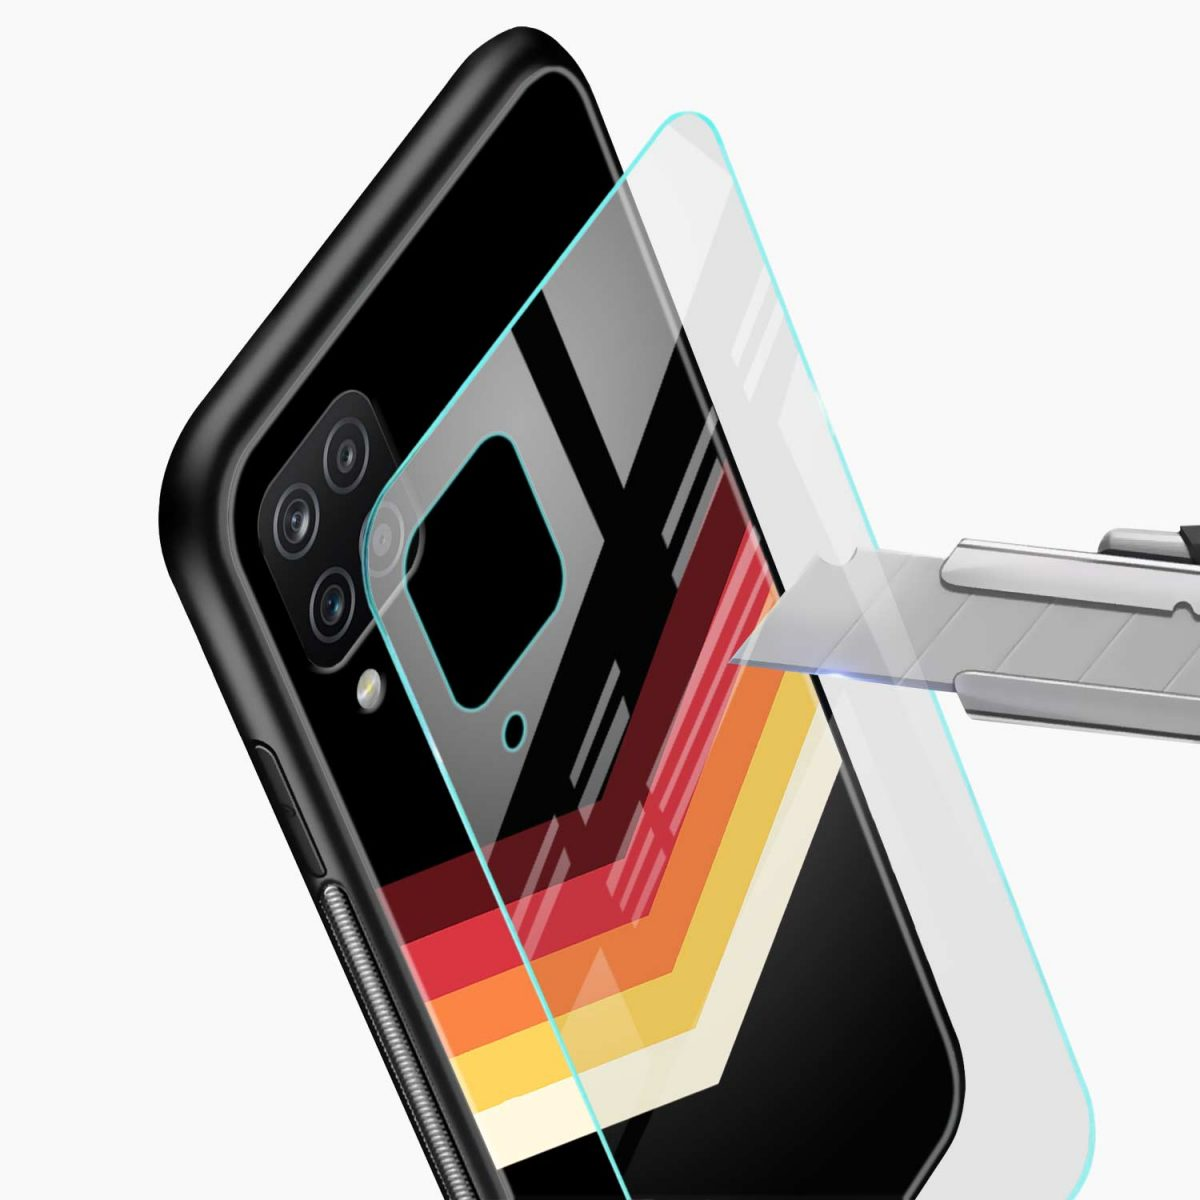 rewind strips pattern glass view samsung galaxy a12 back cover